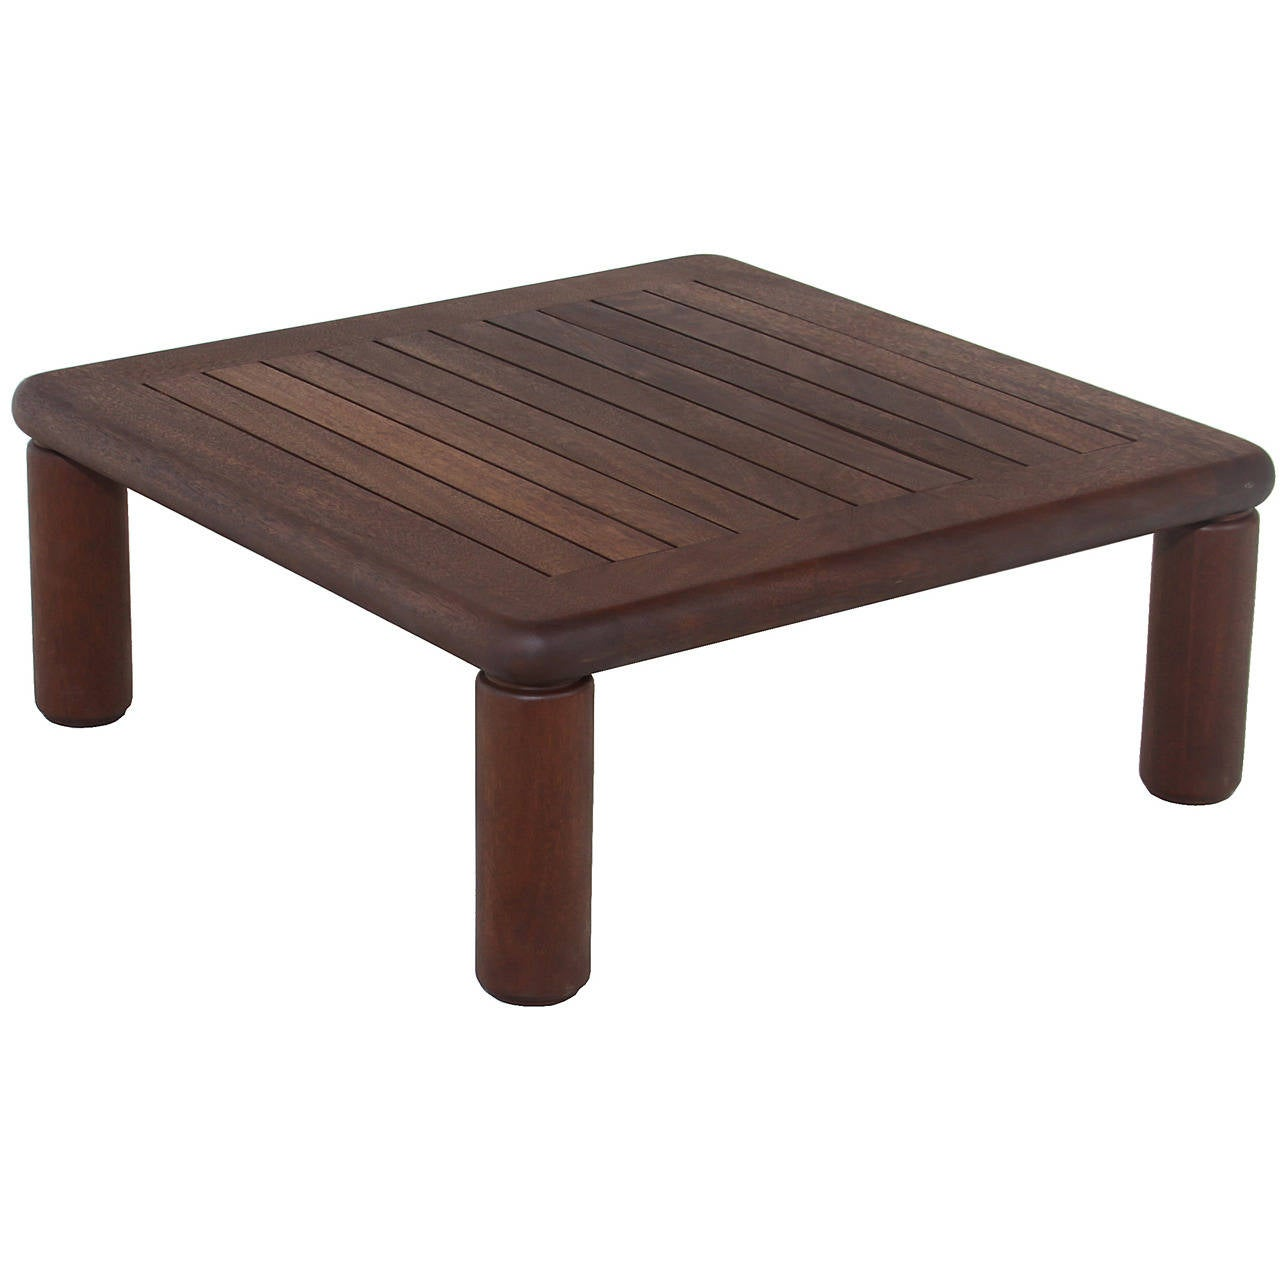 Slatted Solid Honduran Mahogany coffee table by Sherrill Broudy